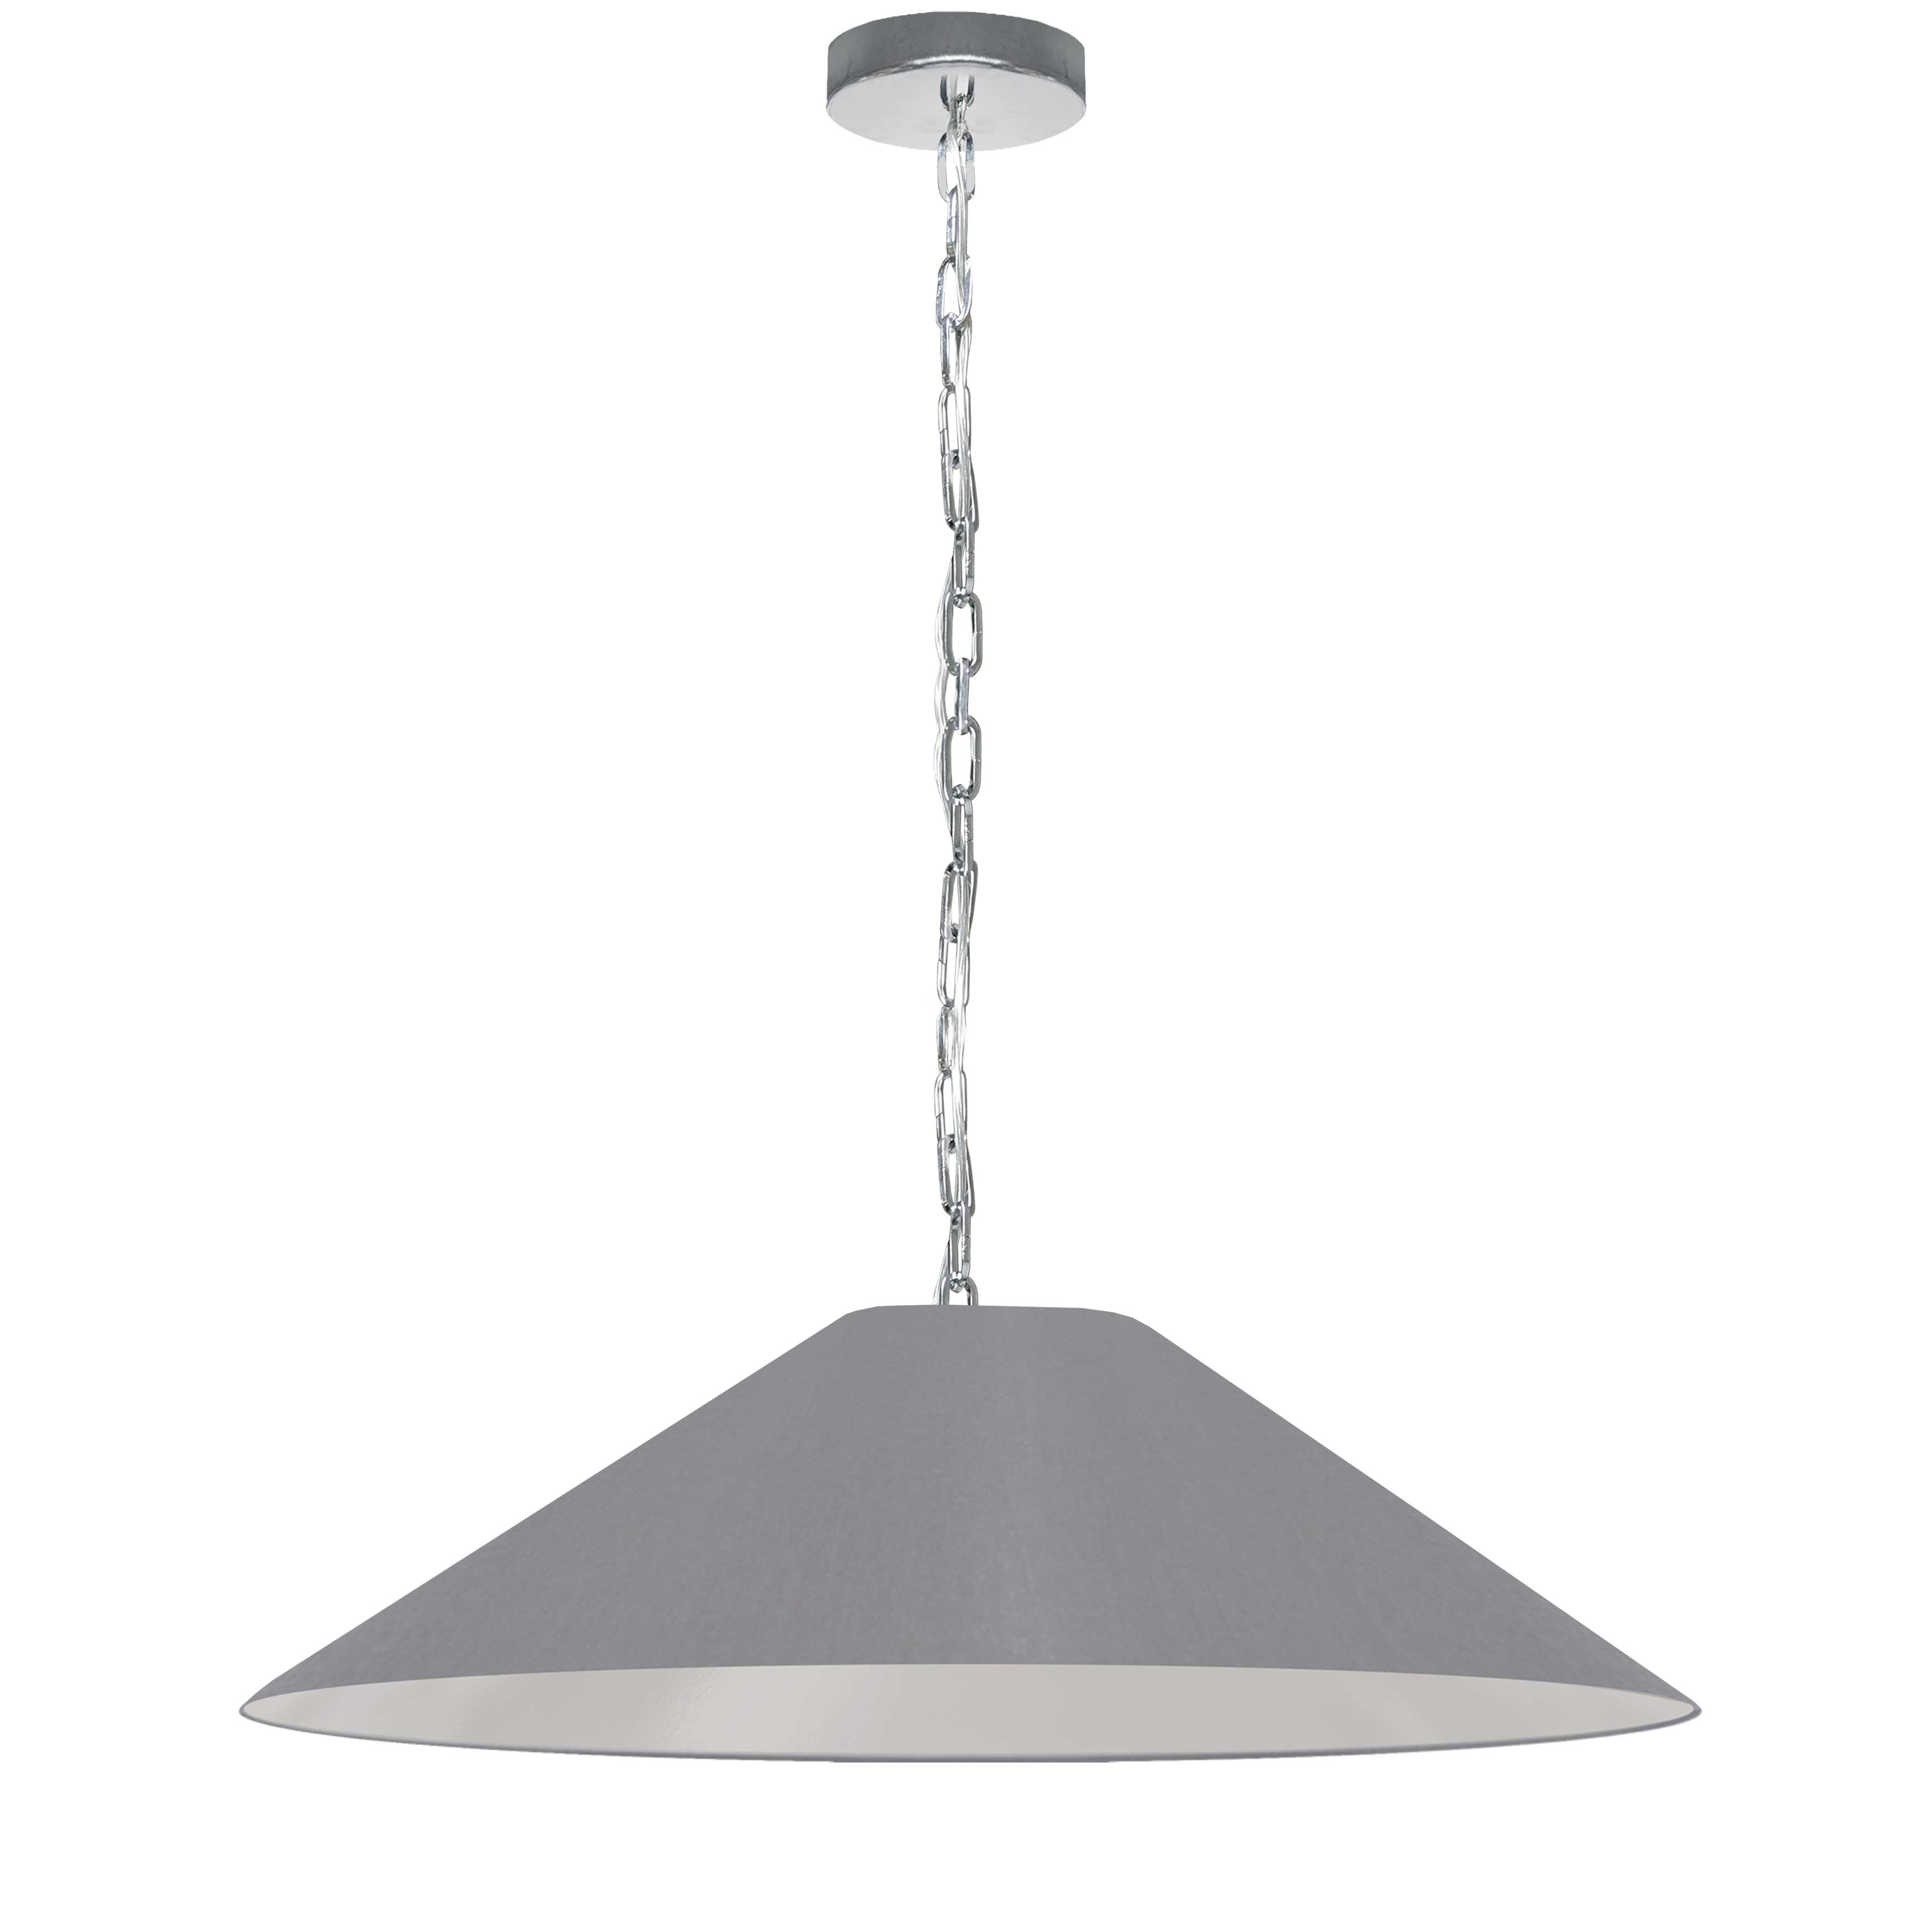 1LT Incandescent Pendant, PC w/ GRY Shade